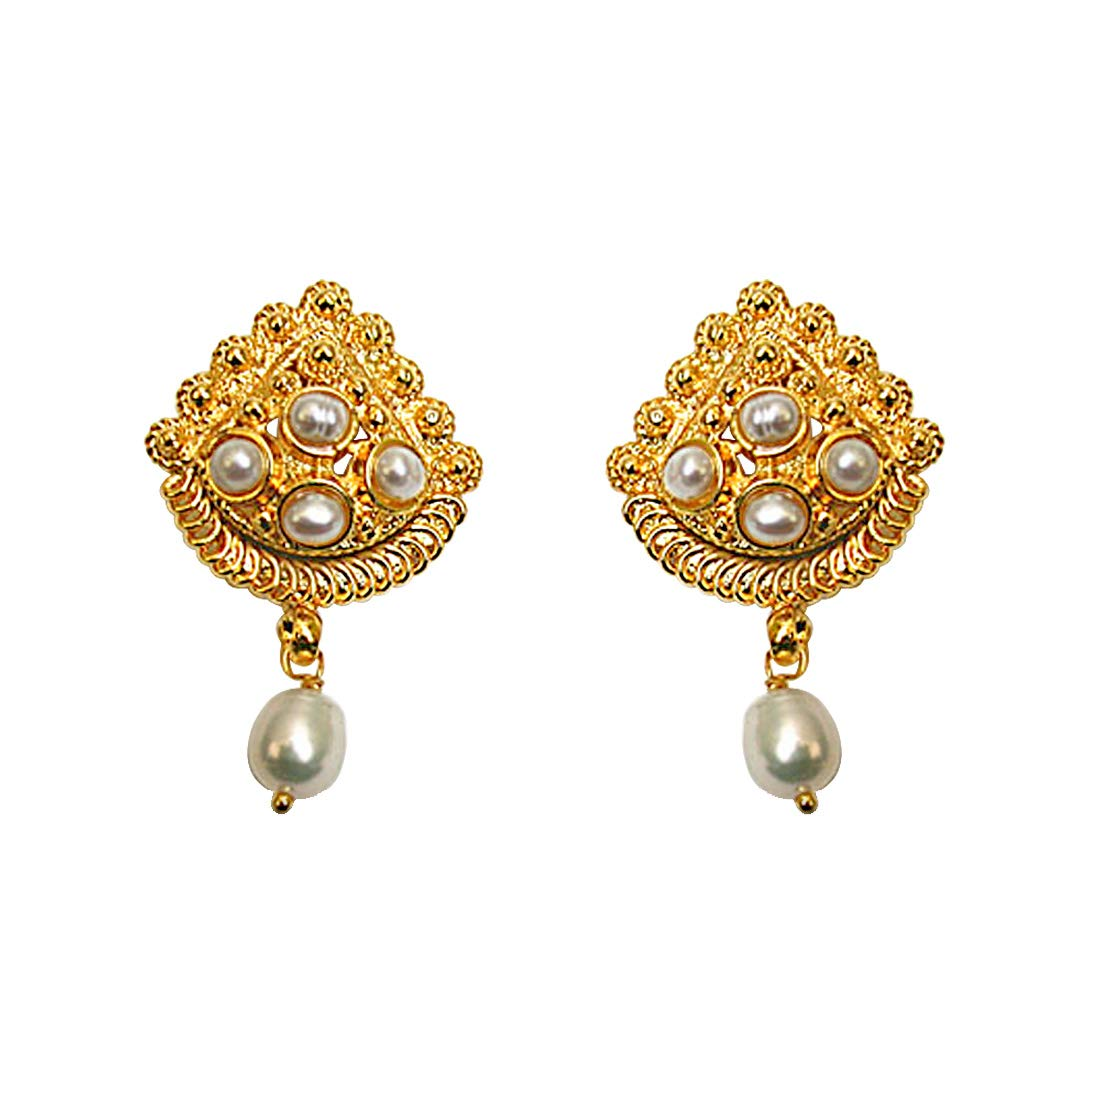 24kt Gold Plated & Freshwater Pearl Earrings for Women (SE140)